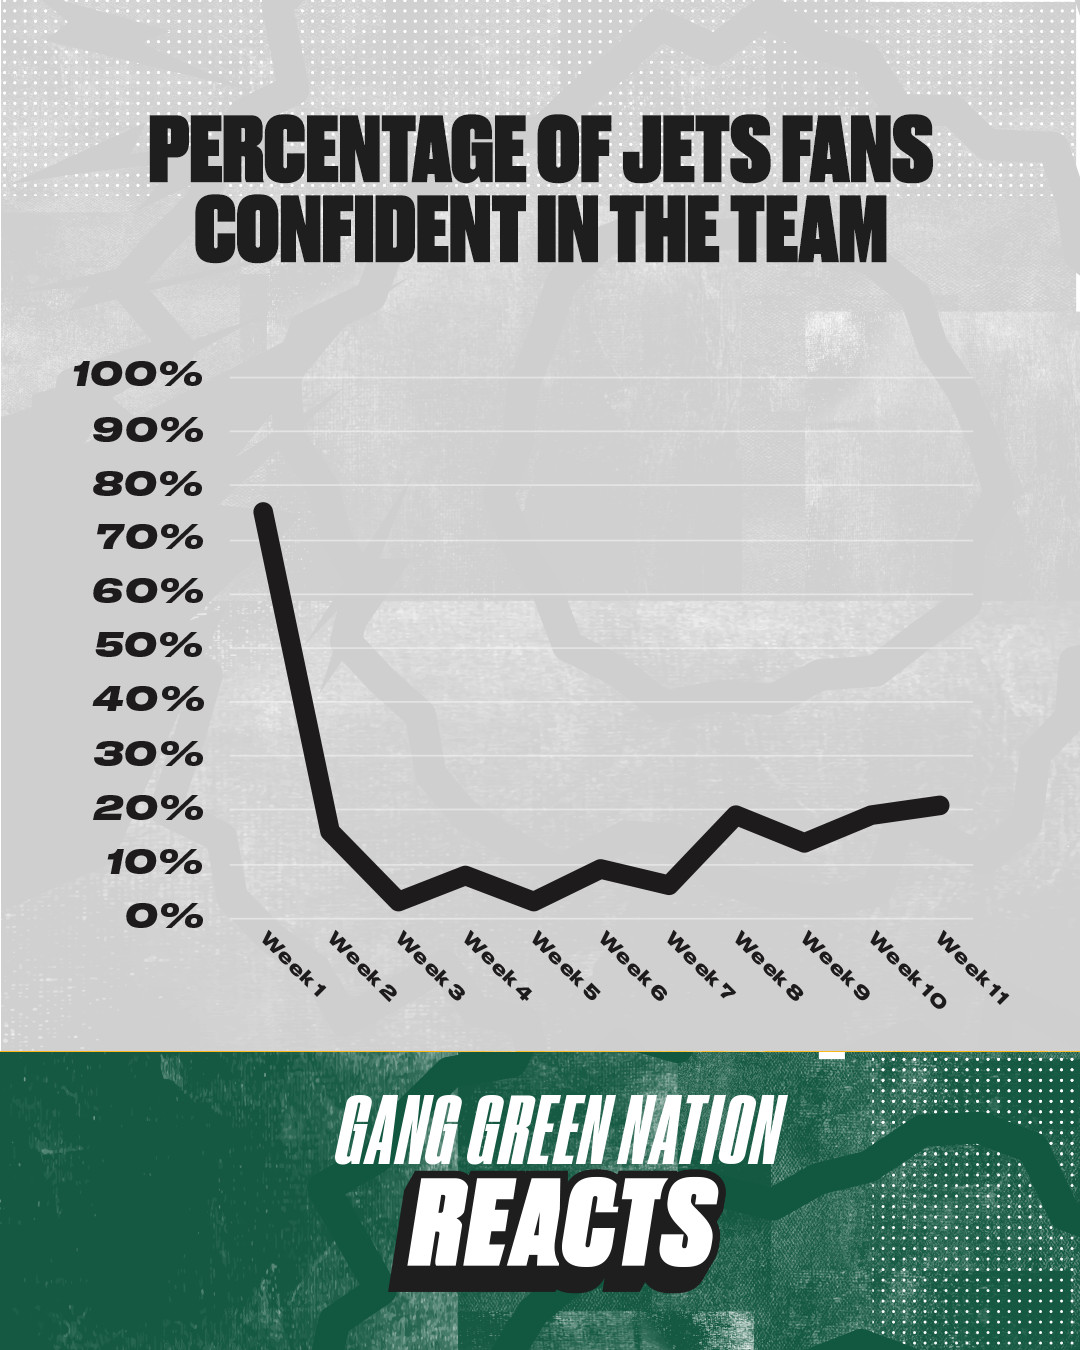 Jets fan confidence at 21% after bye week - Gang Green Nation